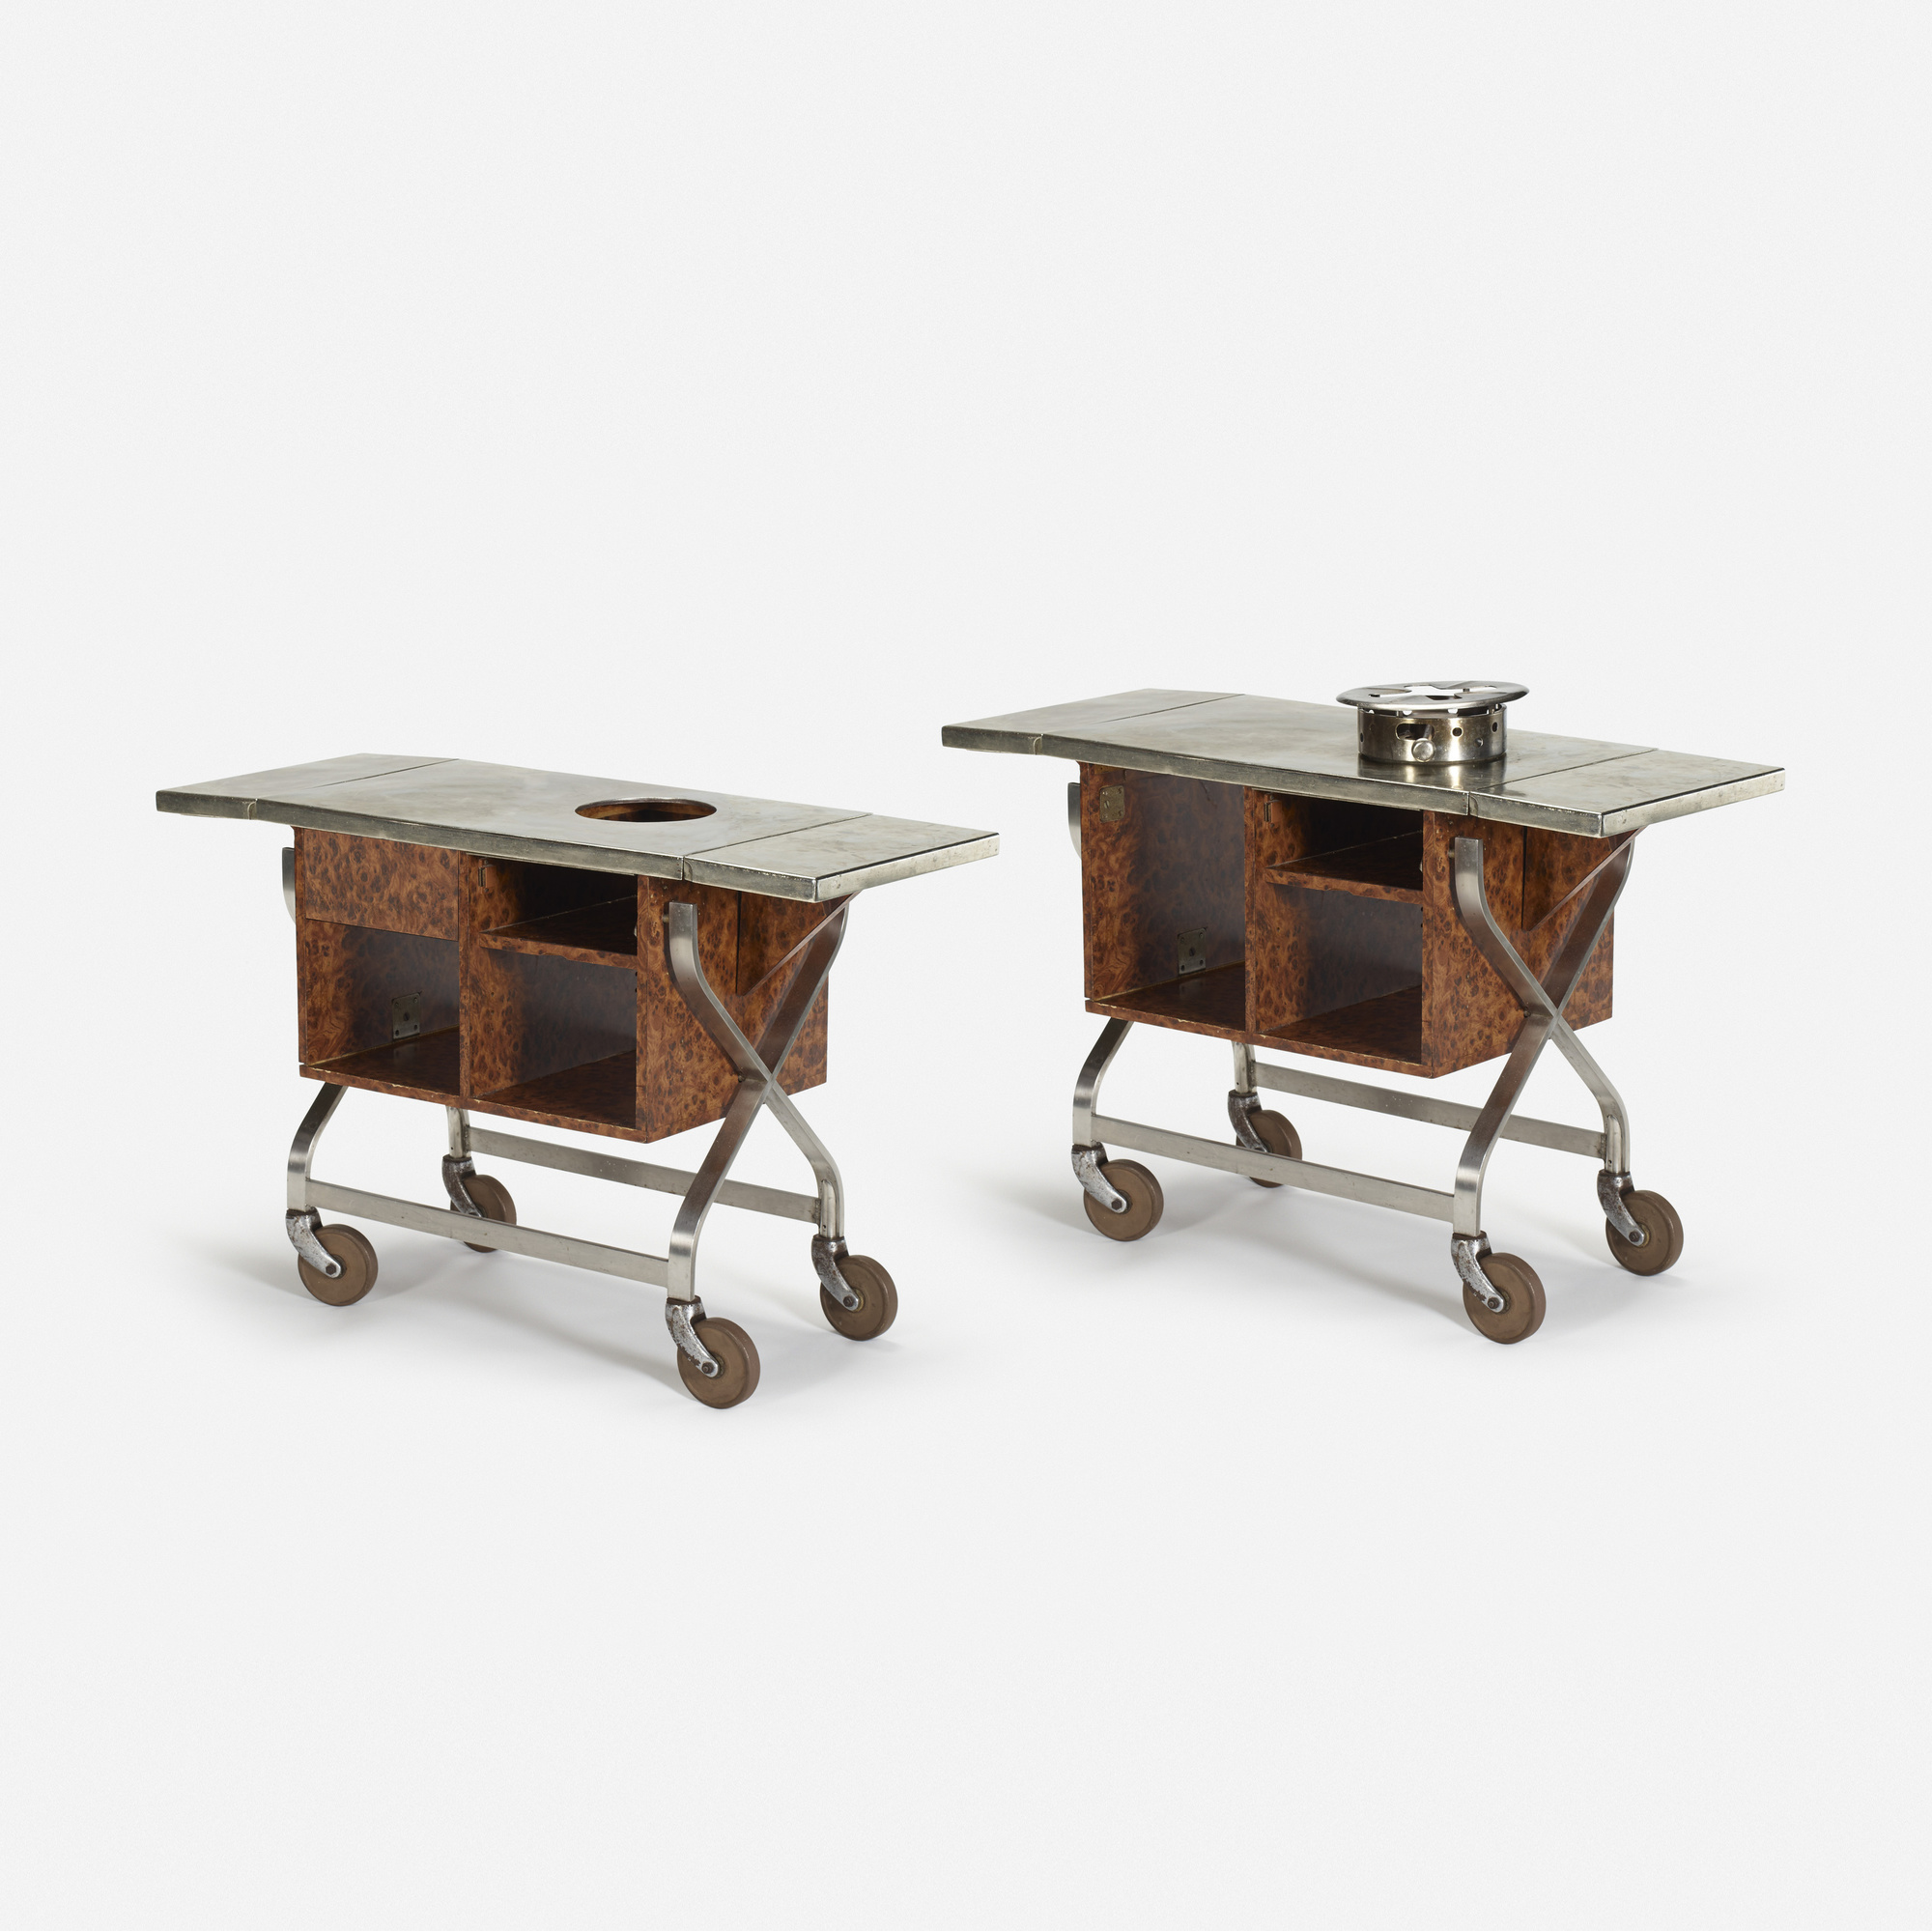 256: Garth and Ada Louise Huxtable / Serving carts from The Four Seasons, pair (1 of 1)